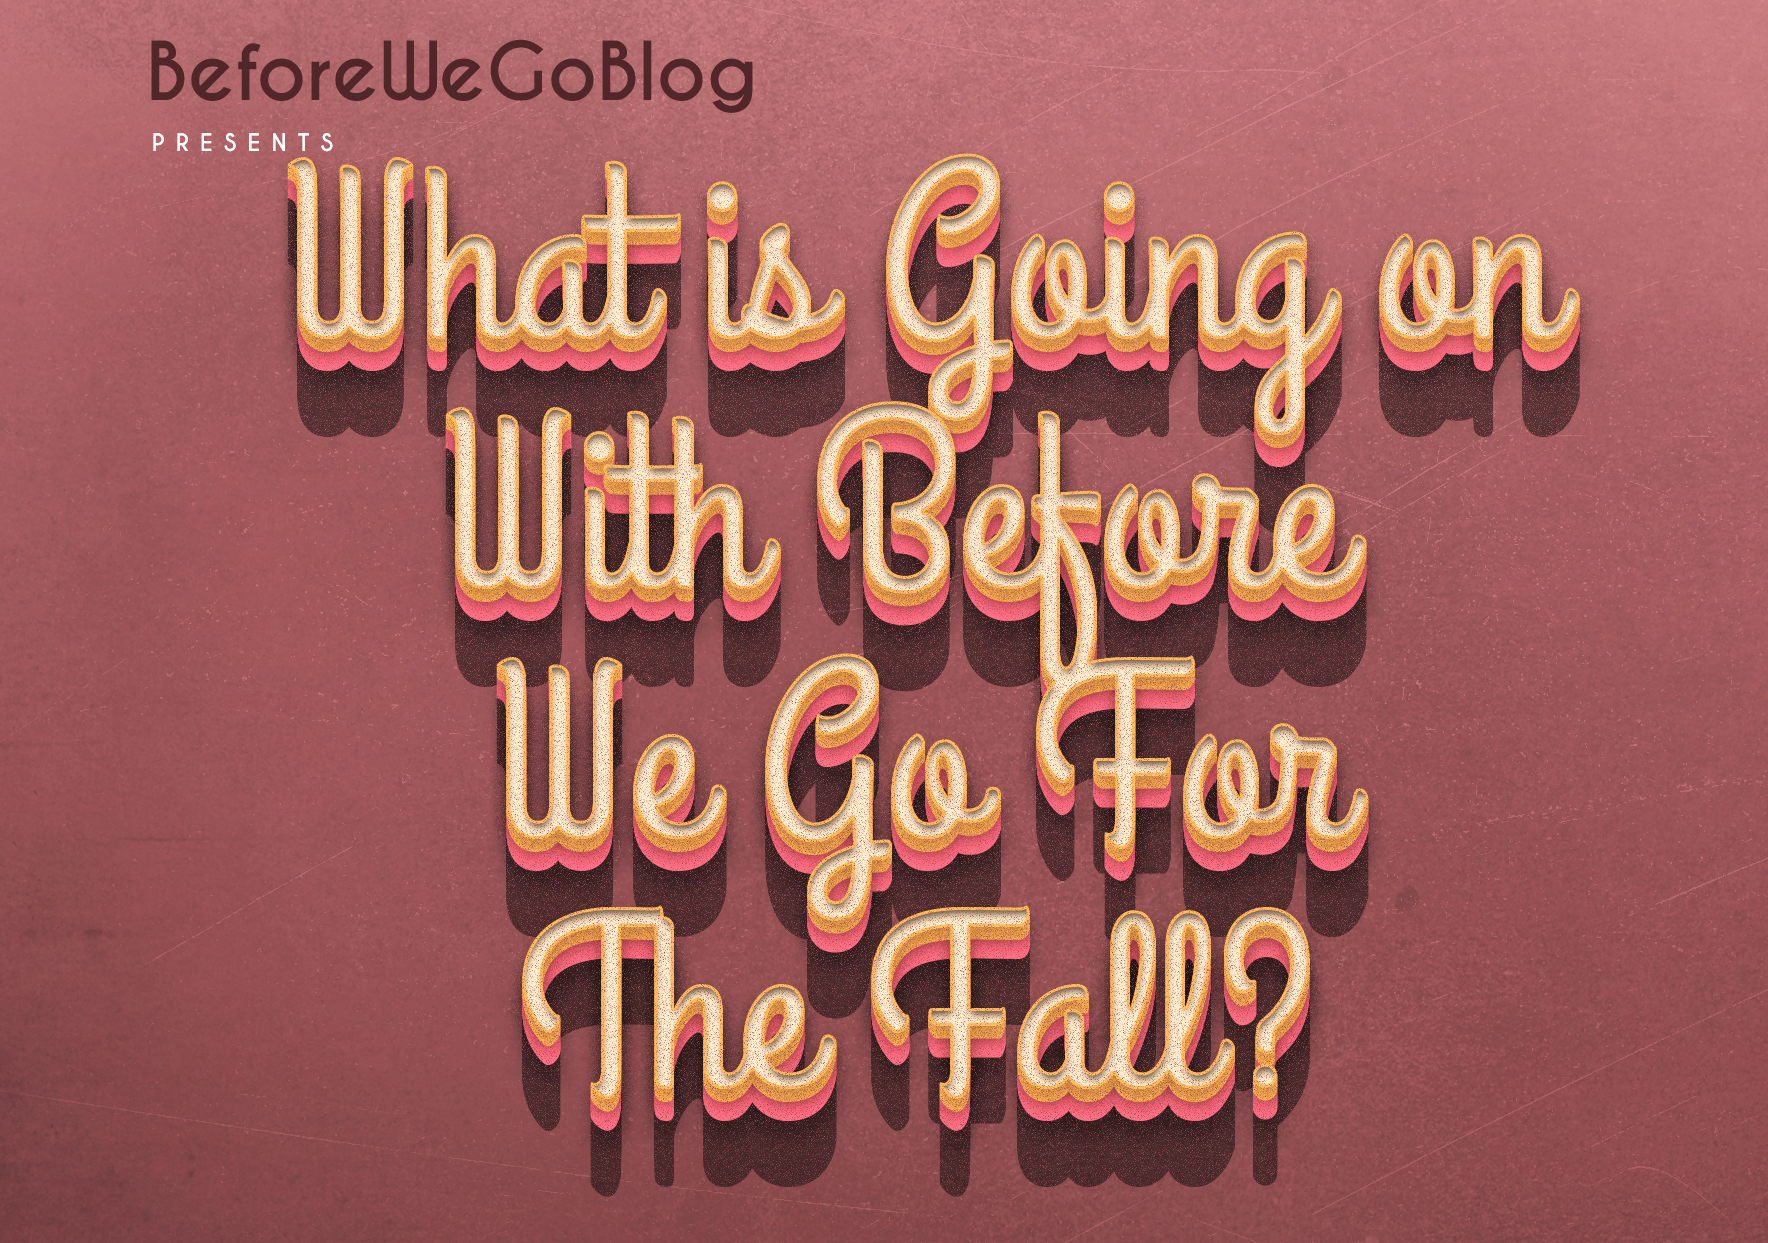 What is going on with Before We Go Blog for the Fall?